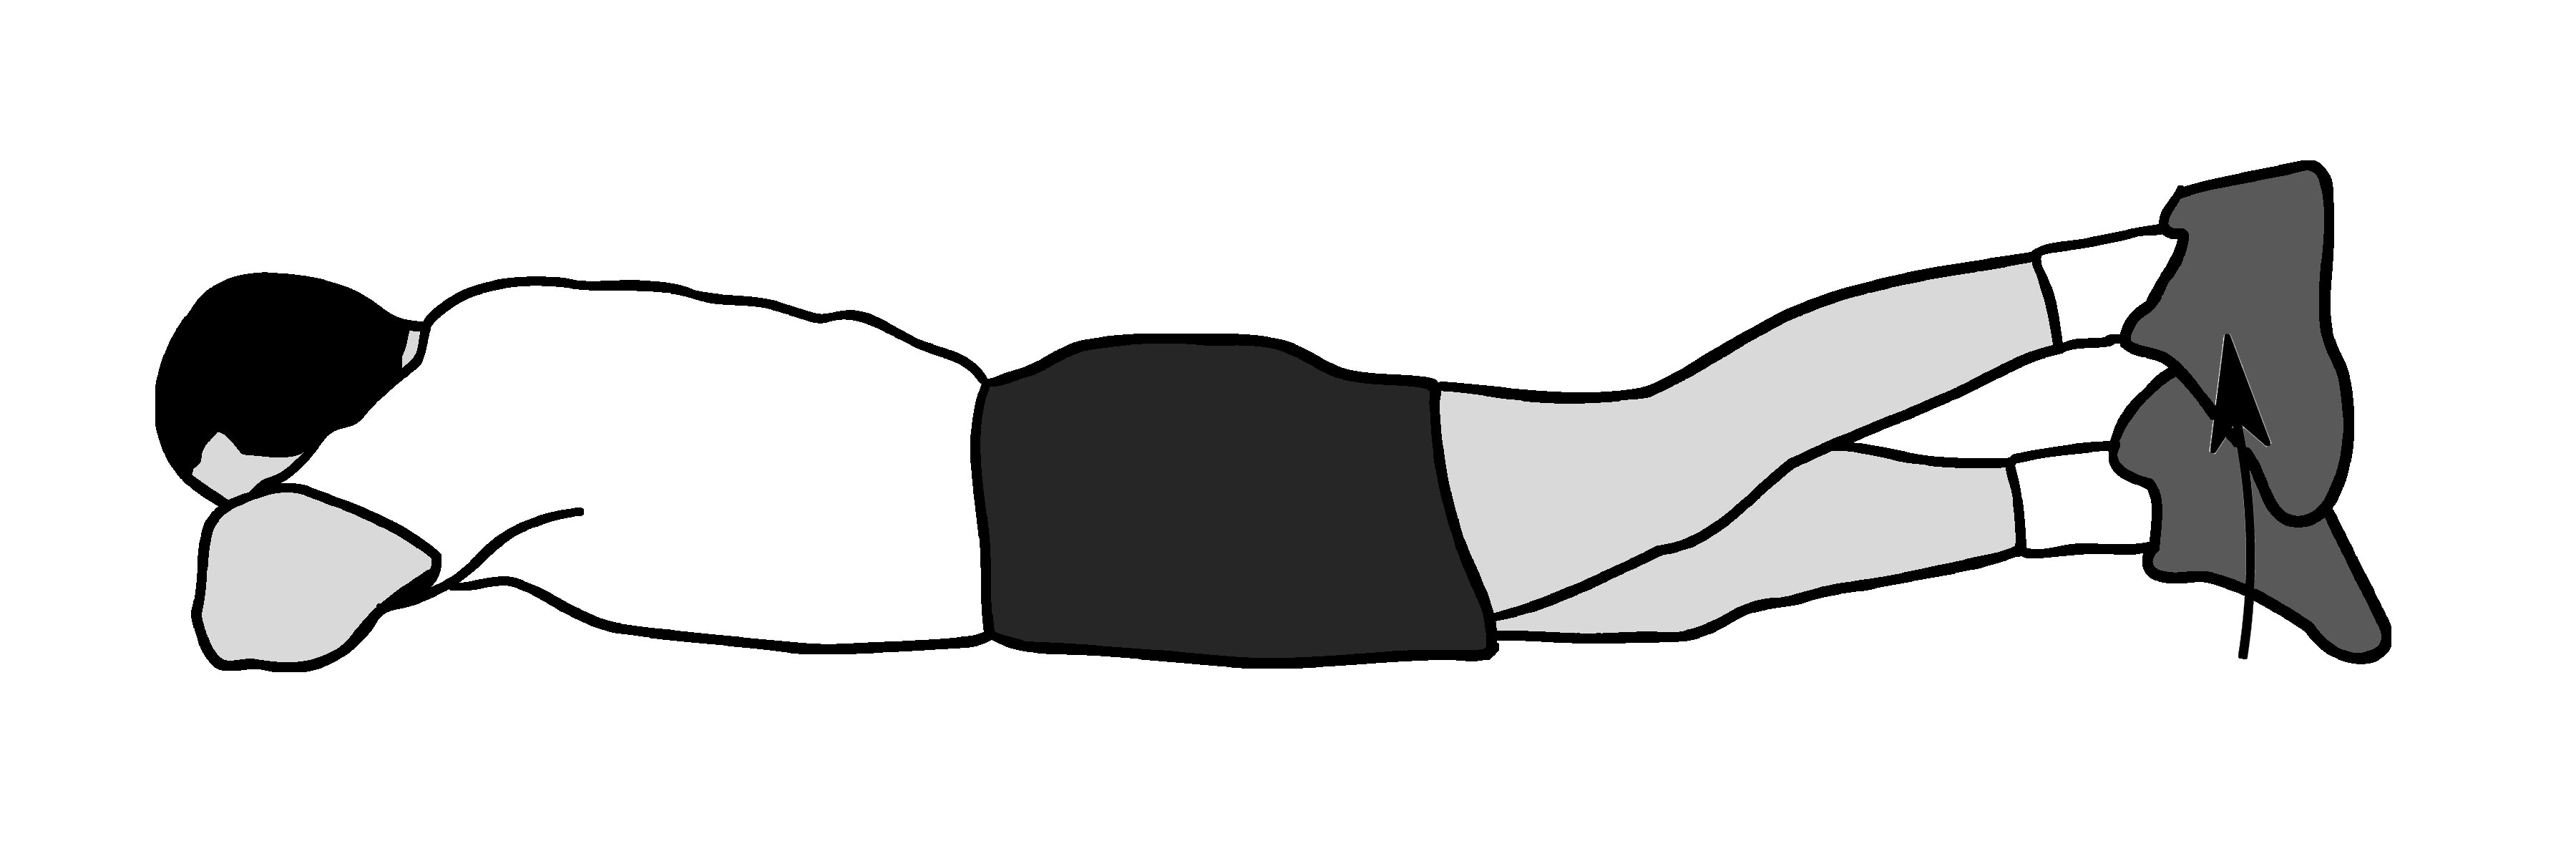 Straight-leg raises (prone)